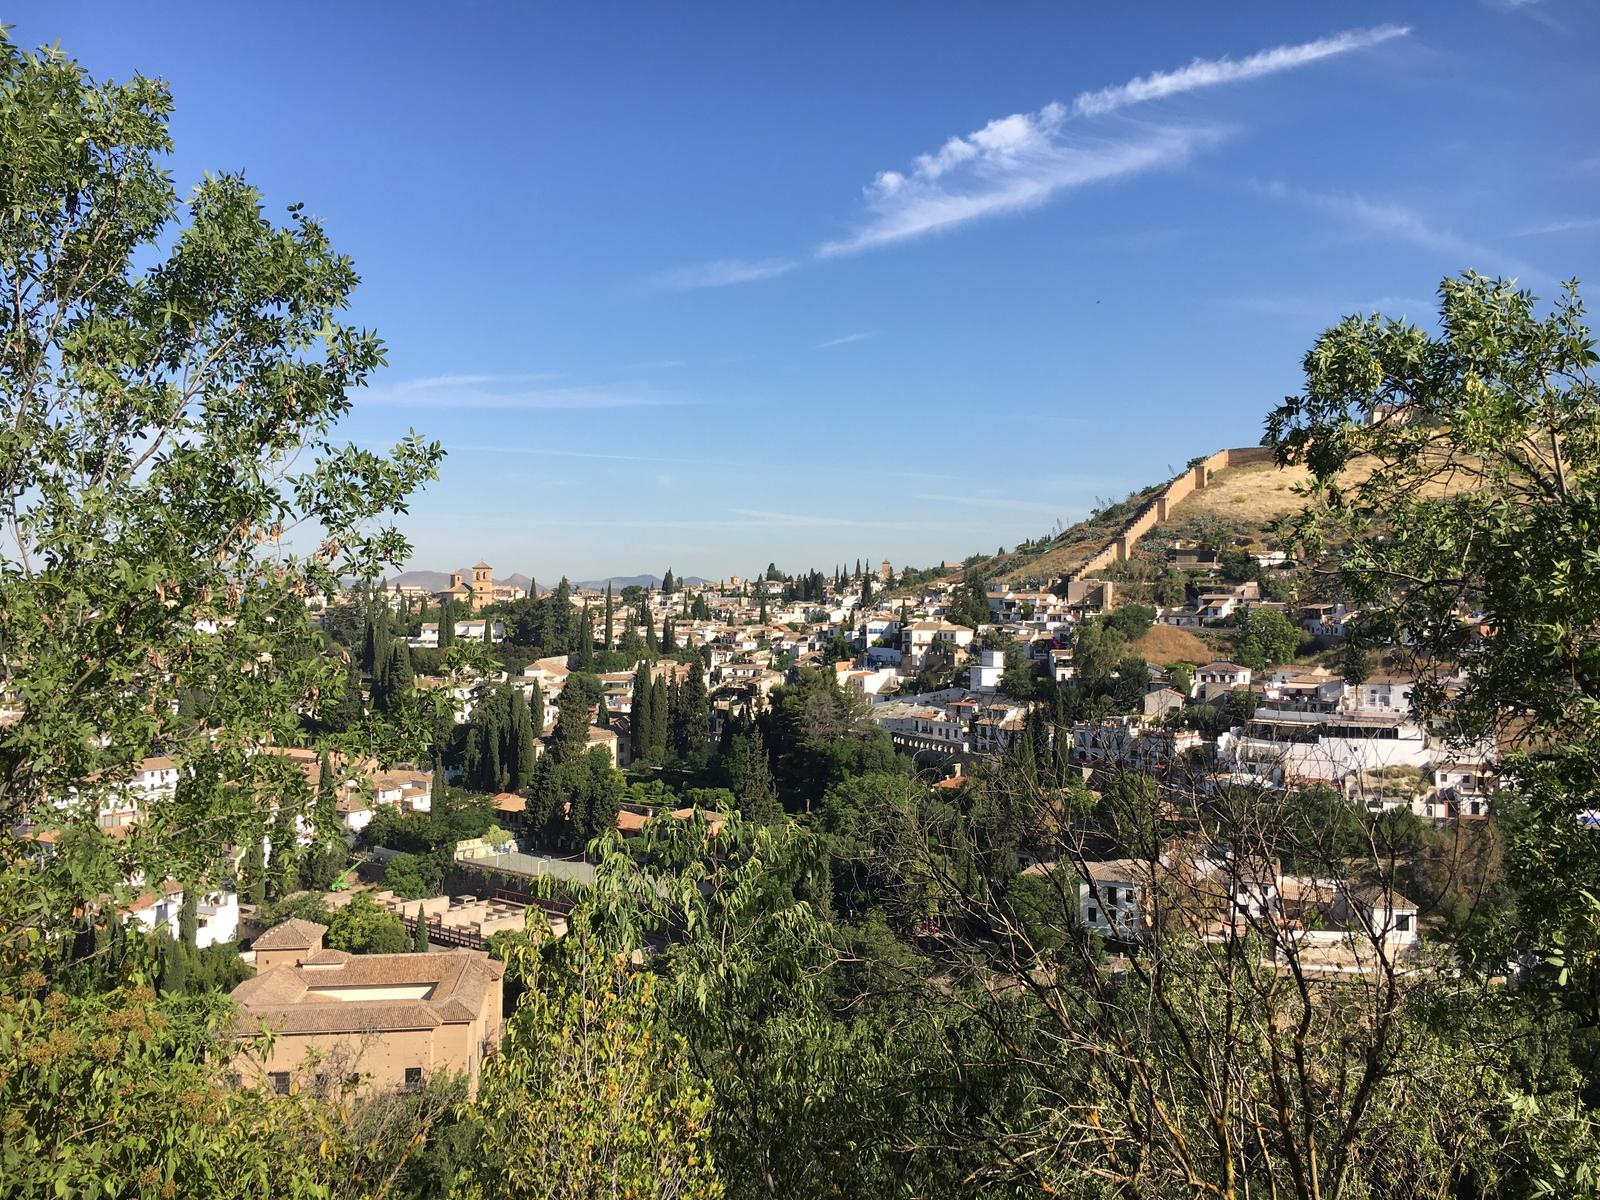 Albaicín from the hike above Alhambra